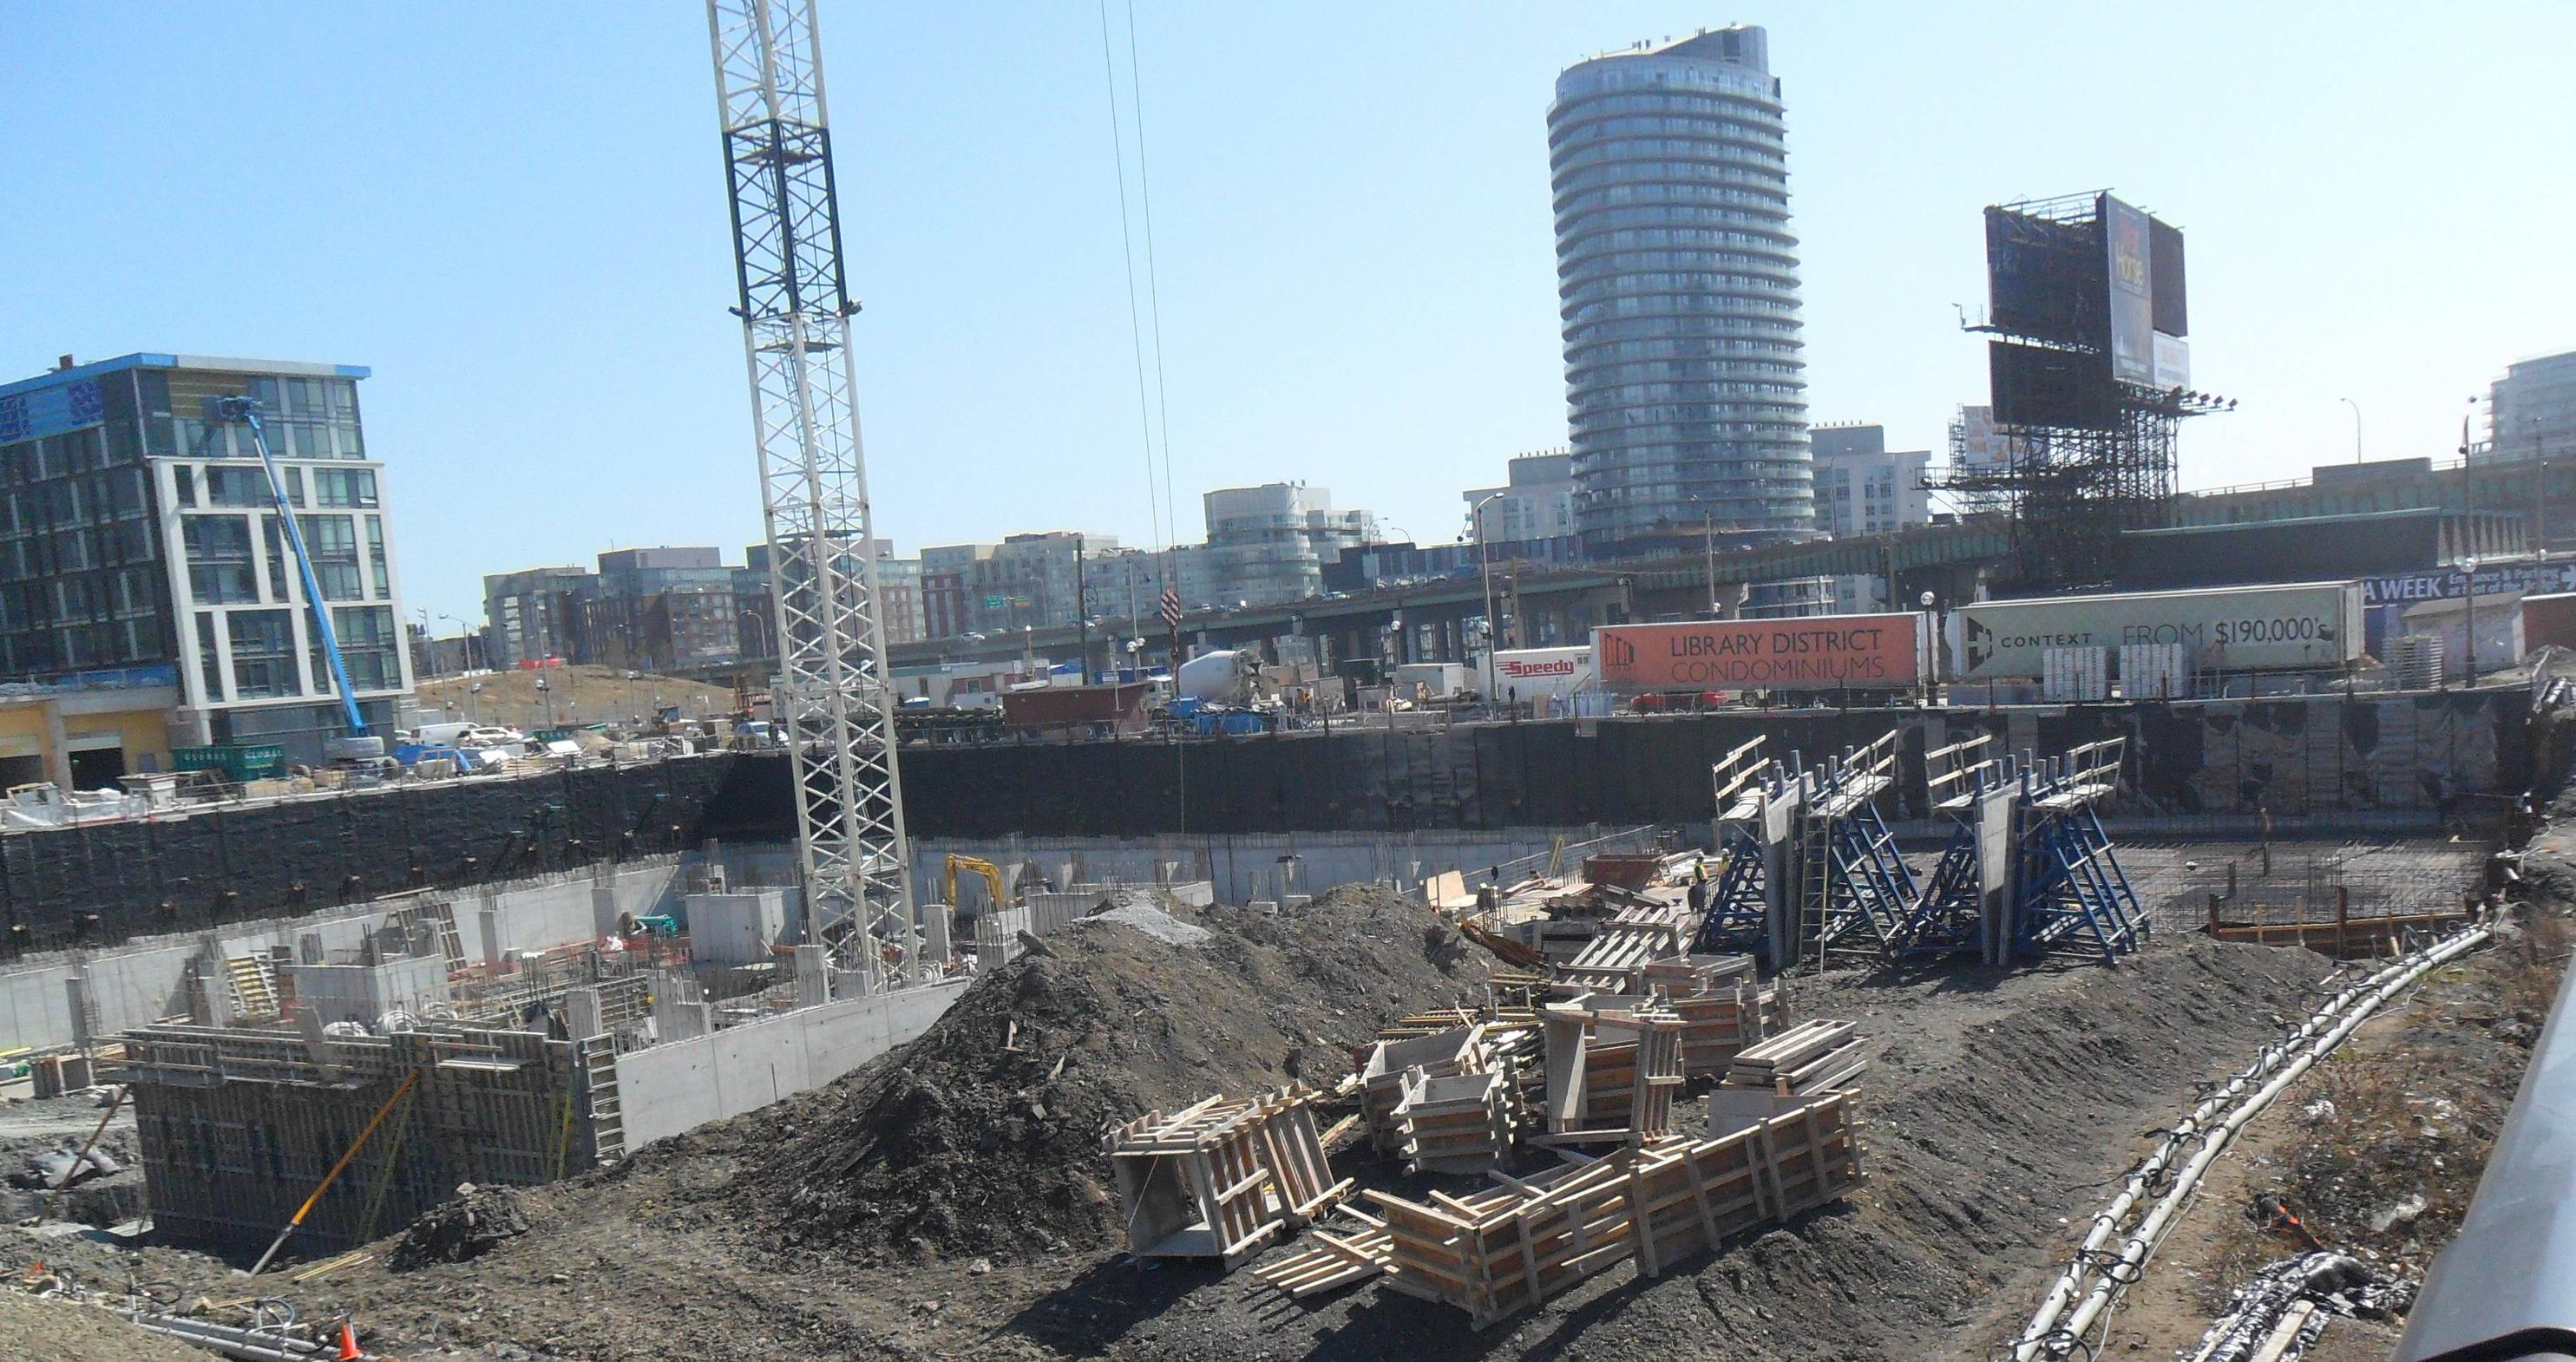 Throwback This, Concord CityPlace, Library Scission, Fort York, Toronto